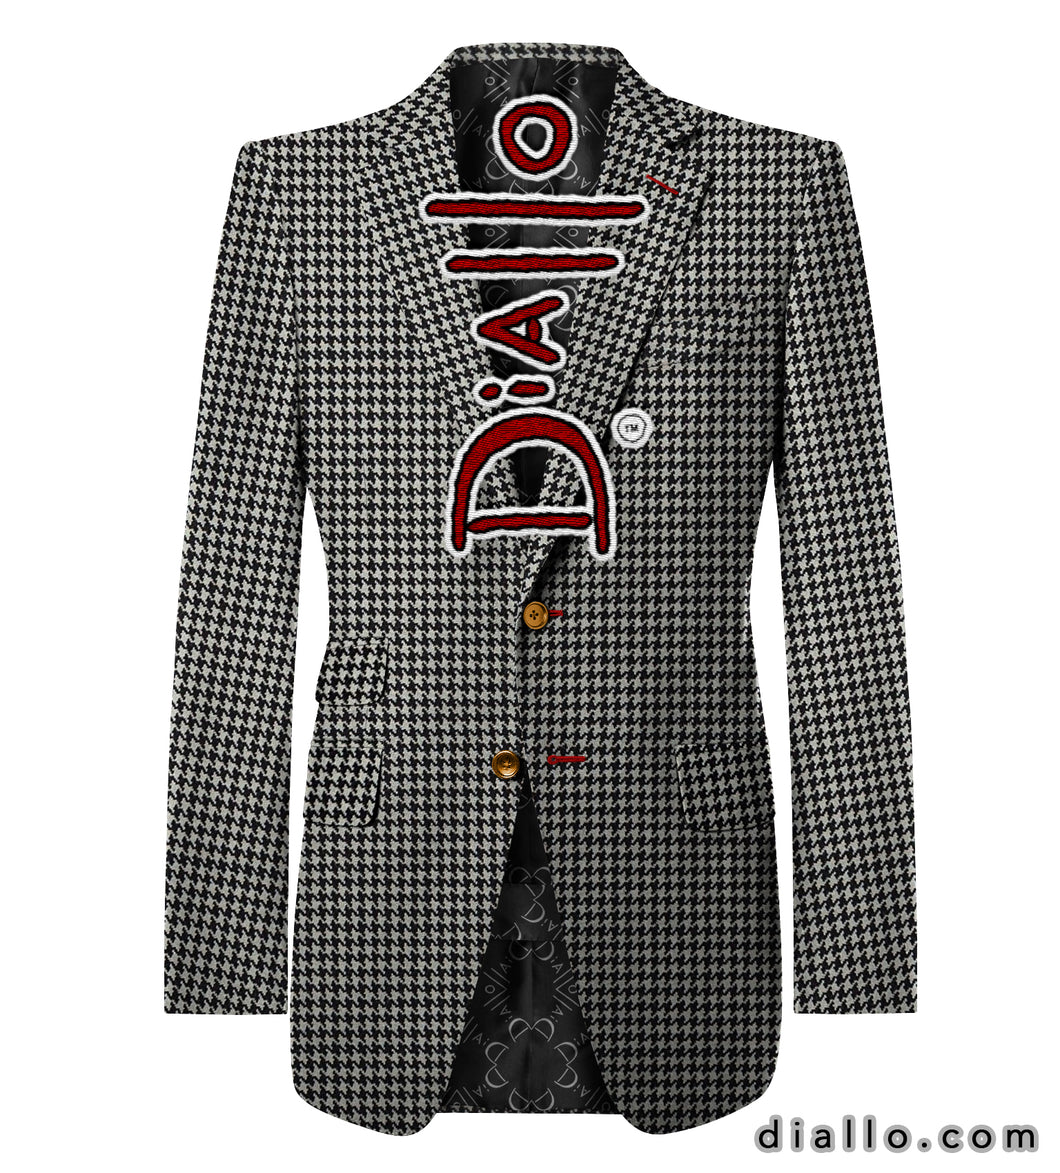 Pure Houndstooth Wool Blazer Diallo (TM) Blazer.